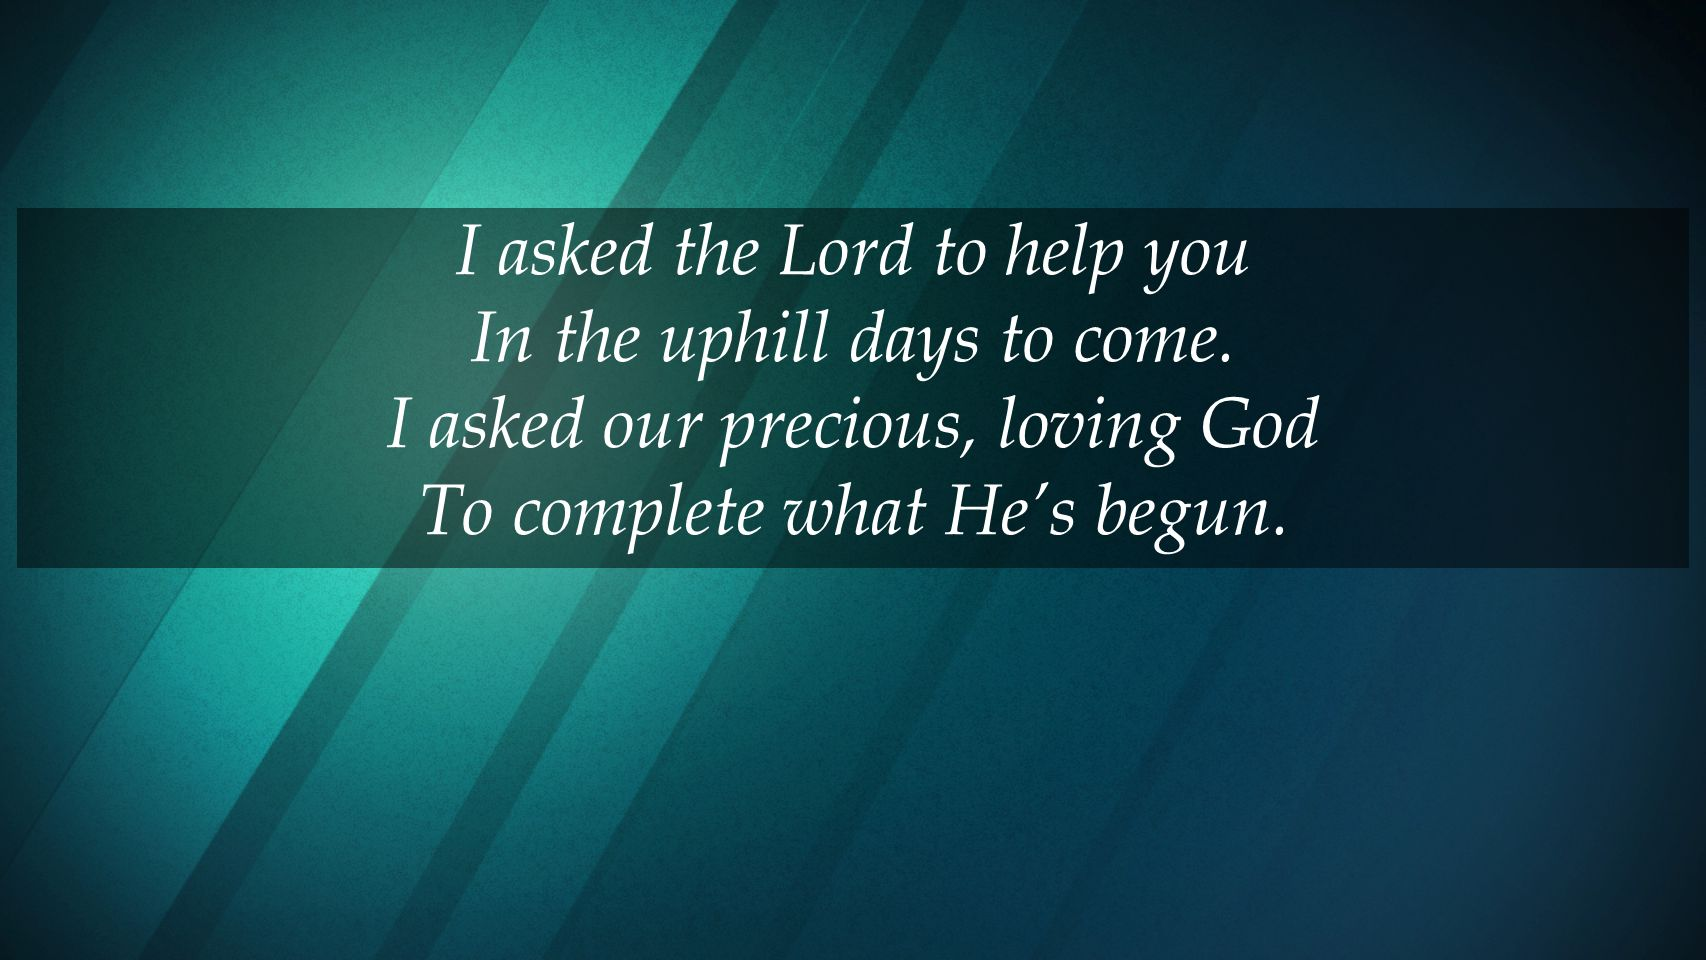 I asked the Lord to help you In the uphill days to come.